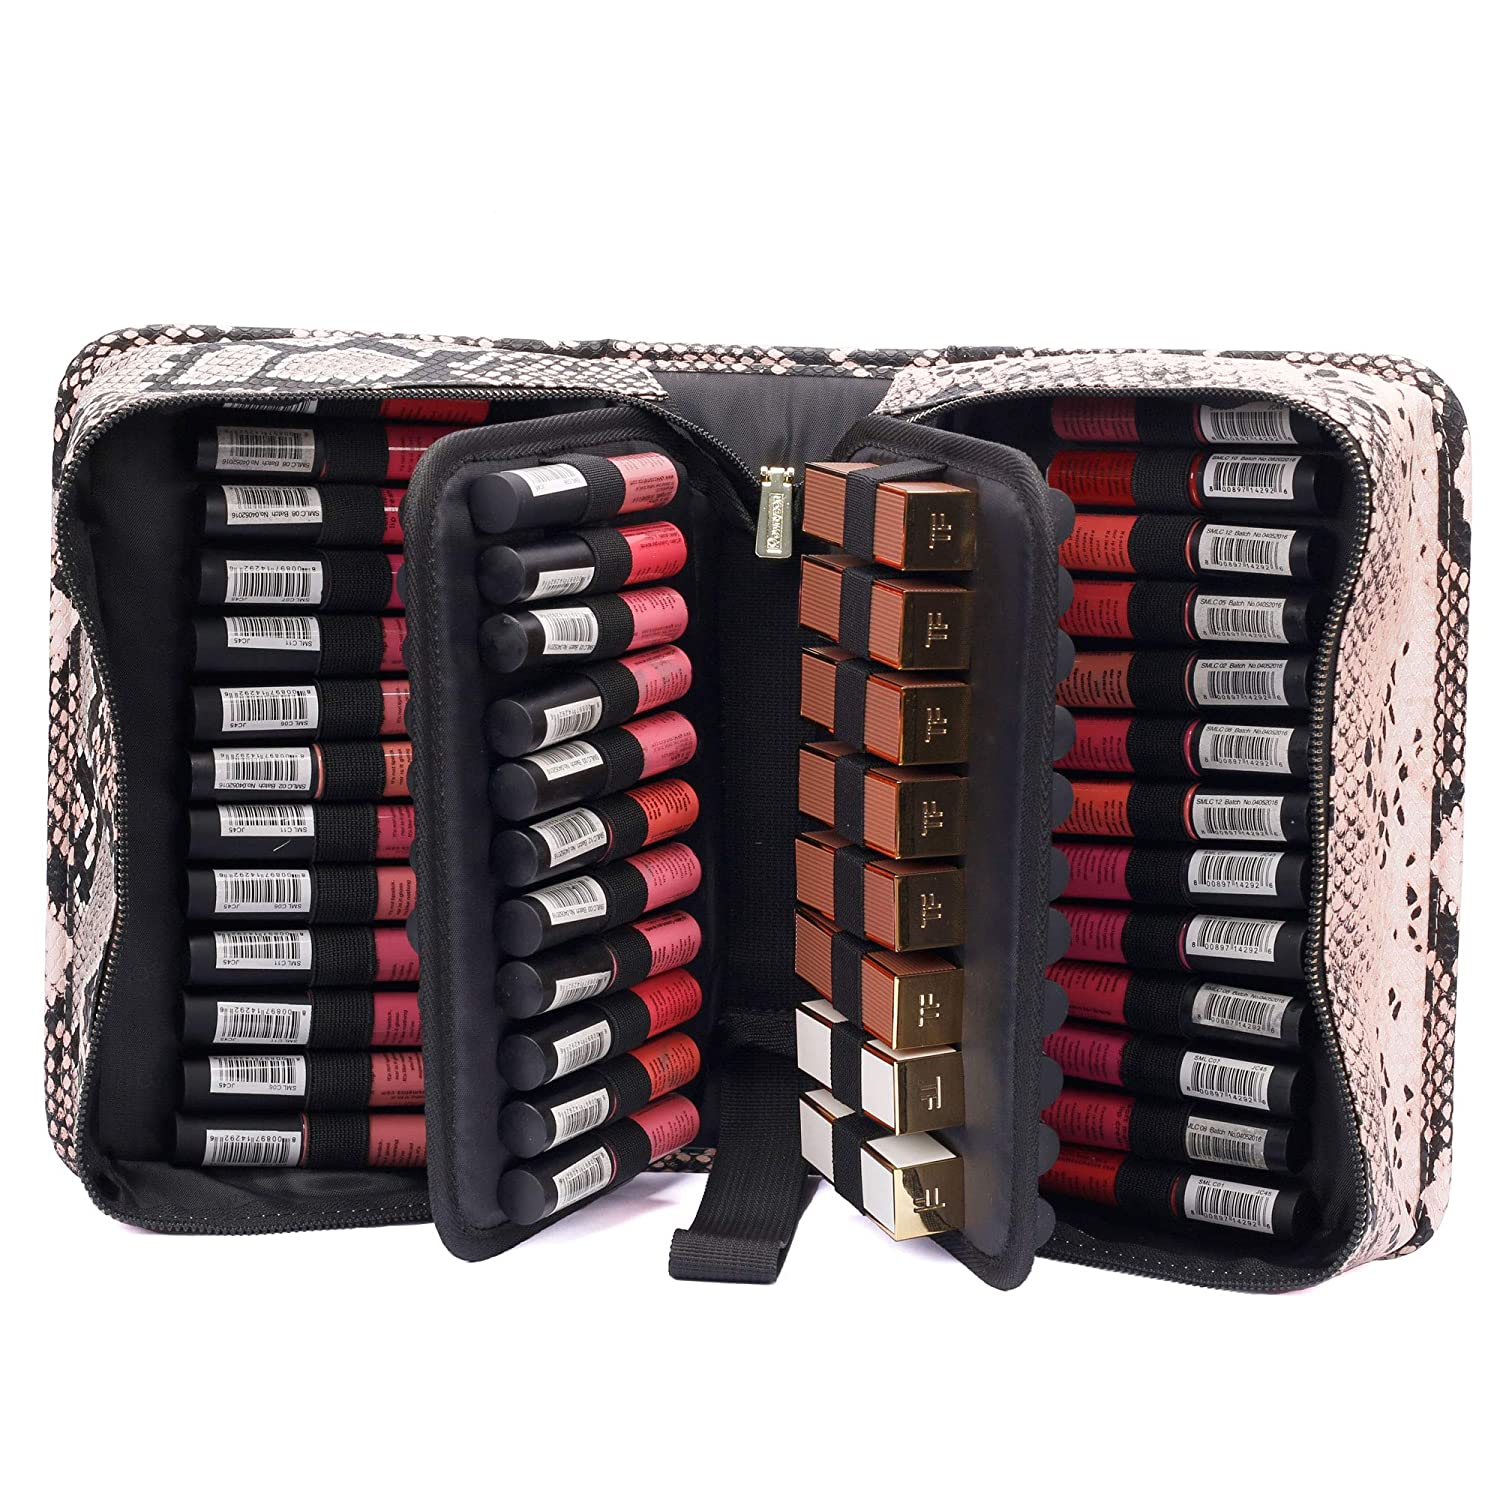 ROWNYEON Max 66% OFF Lipstick Organizer Bag Case Manufacturer regenerated product Sn Holder Slots 67